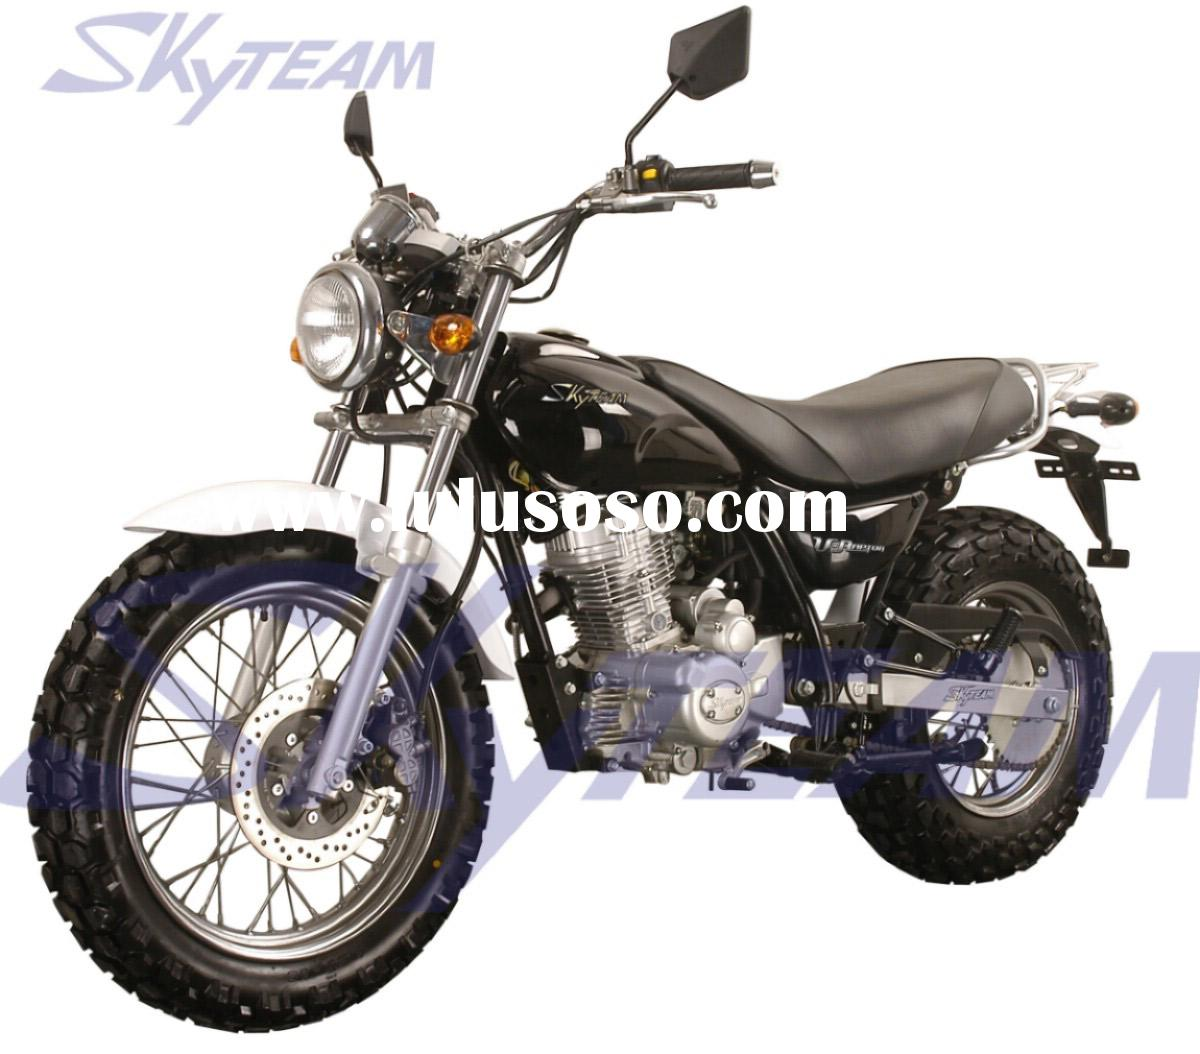 "SKYTEAM V-Raptor 125cc 4 stroke on road motorcycle (EEC Euro III EURO3 Approved 120/80-18"" / 18"